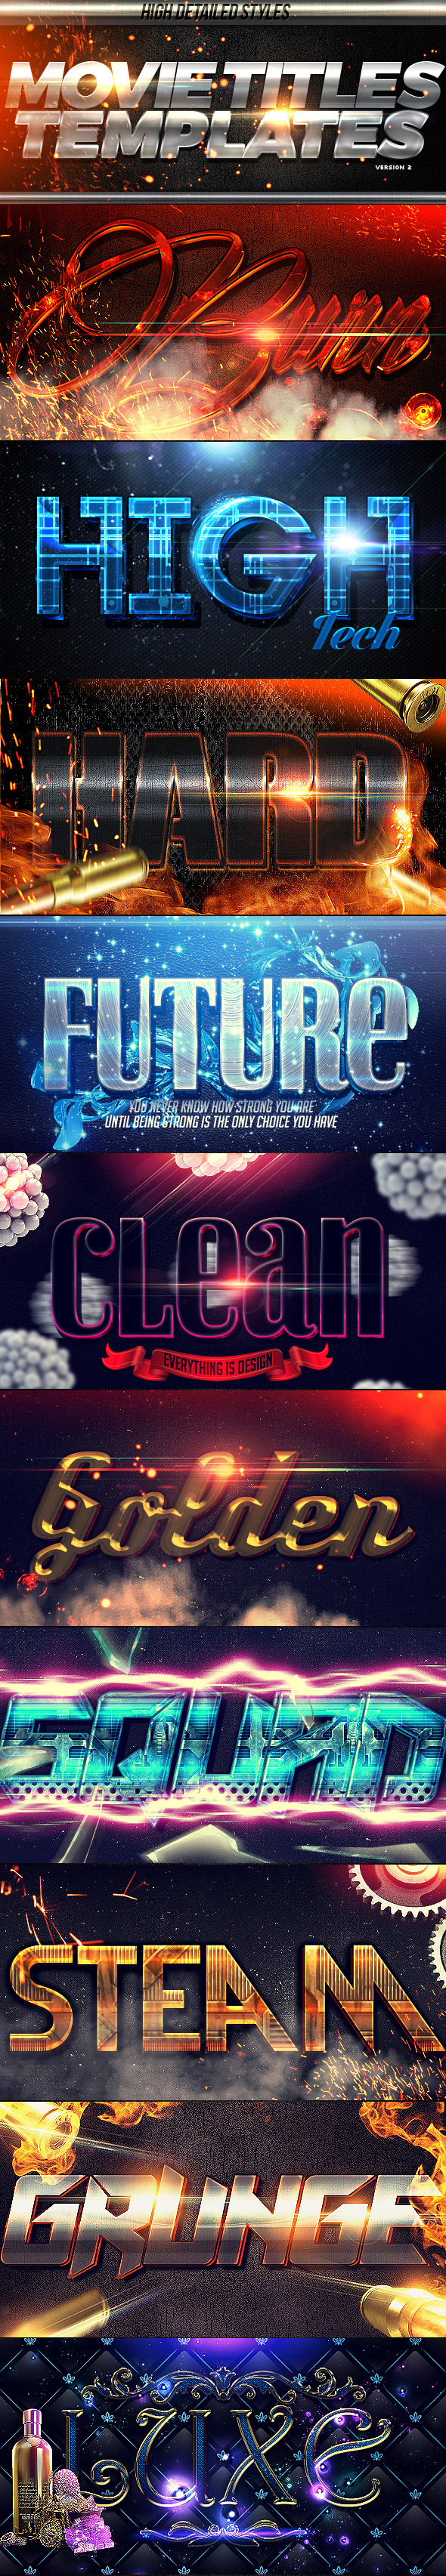 GraphicRiver Movie Titles PSD Template 2 11084569